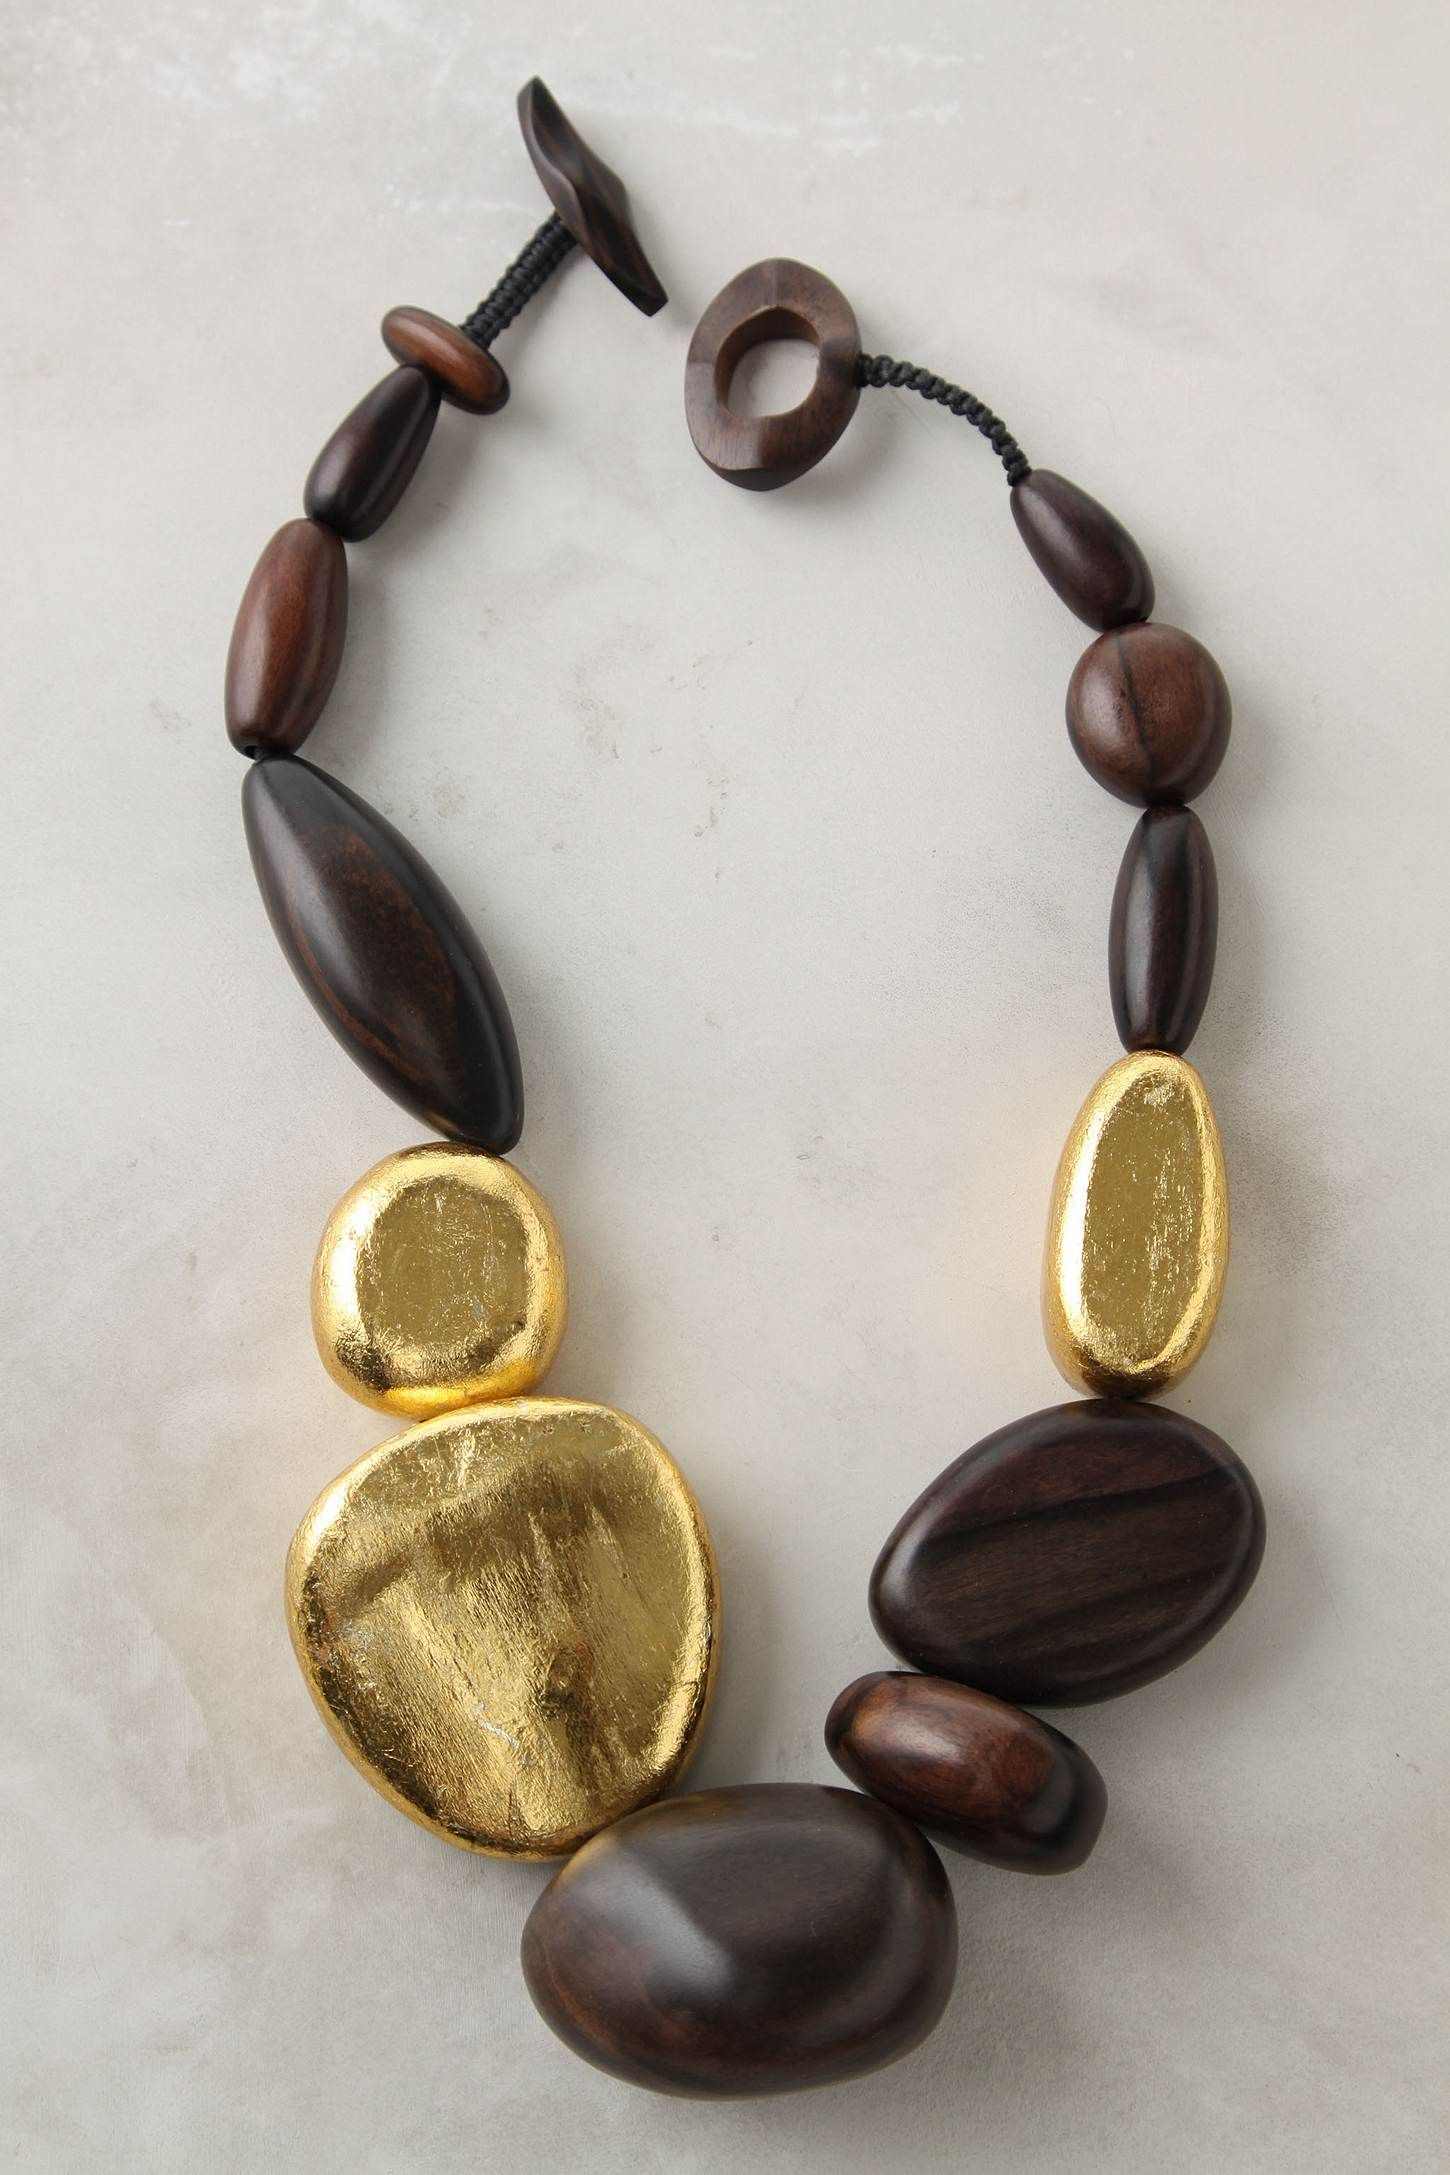 Golden with fine gold Nairobi necklace African Jaspe stone.